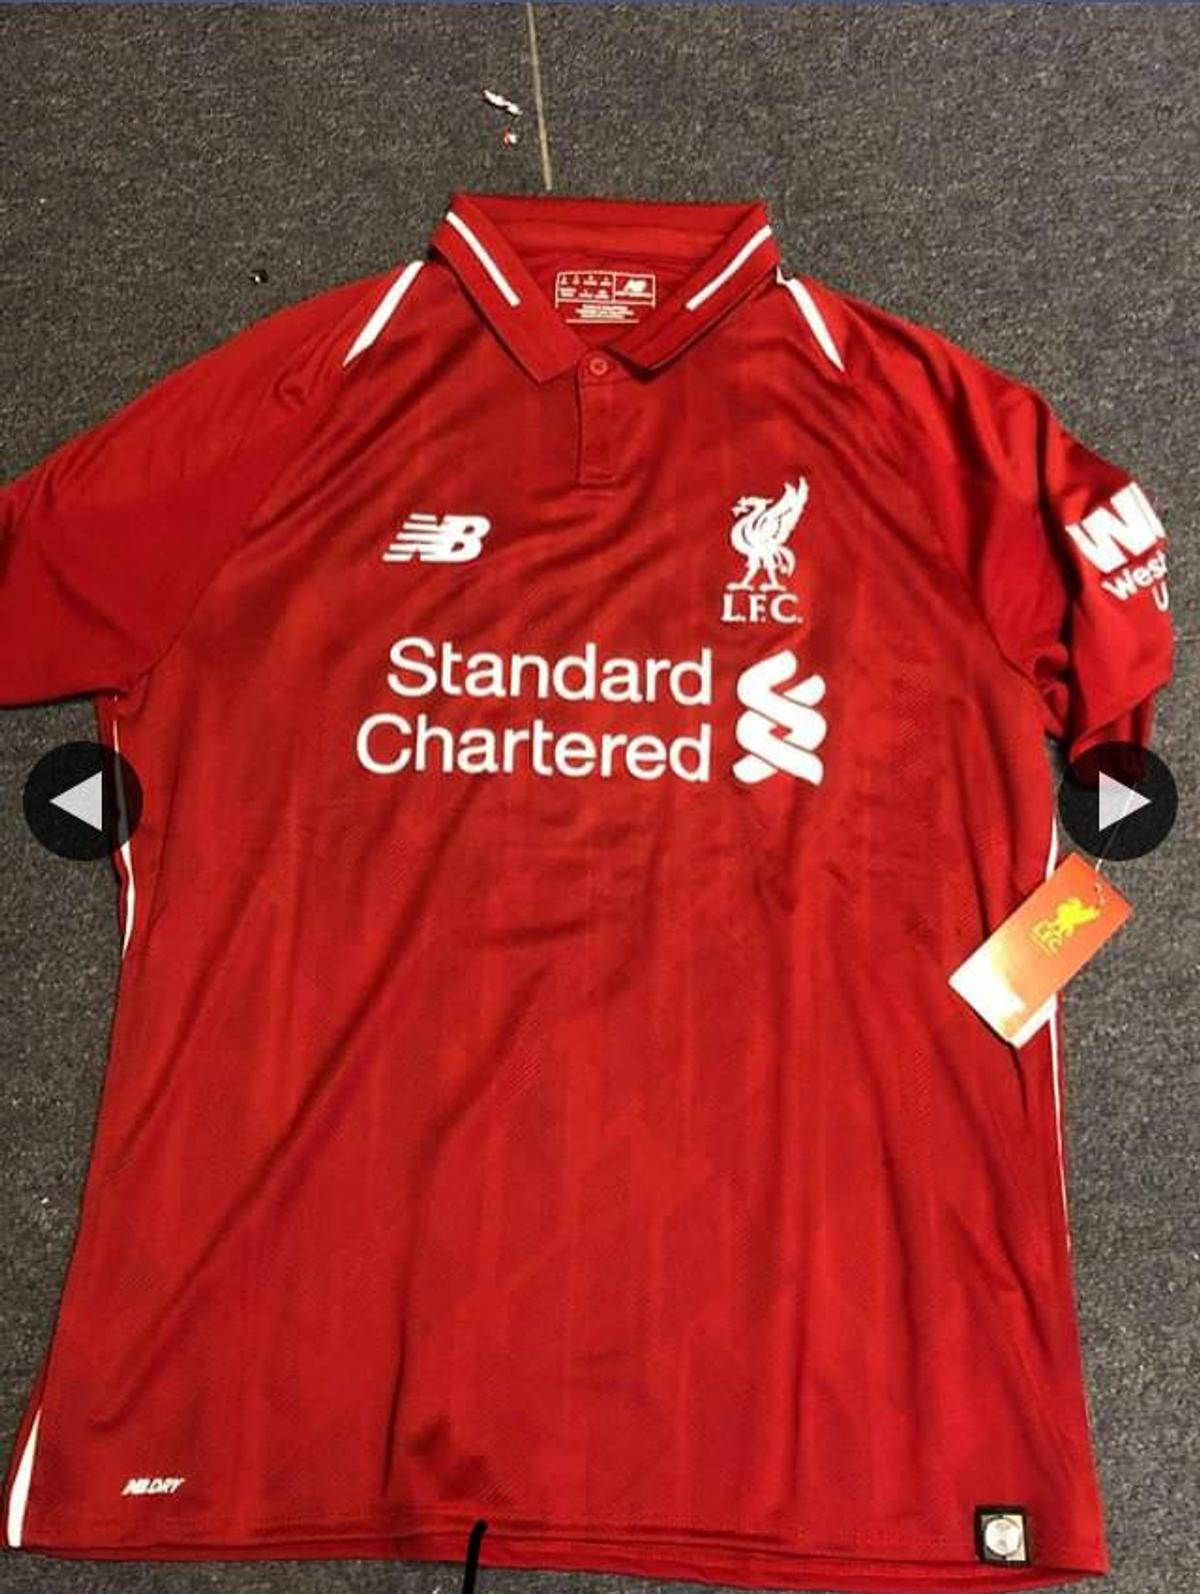 liverpool home shirt 2018 19 new with tags in g52 hillington for 25 00 for sale shpock liverpool home shirt 2018 19 new with tags